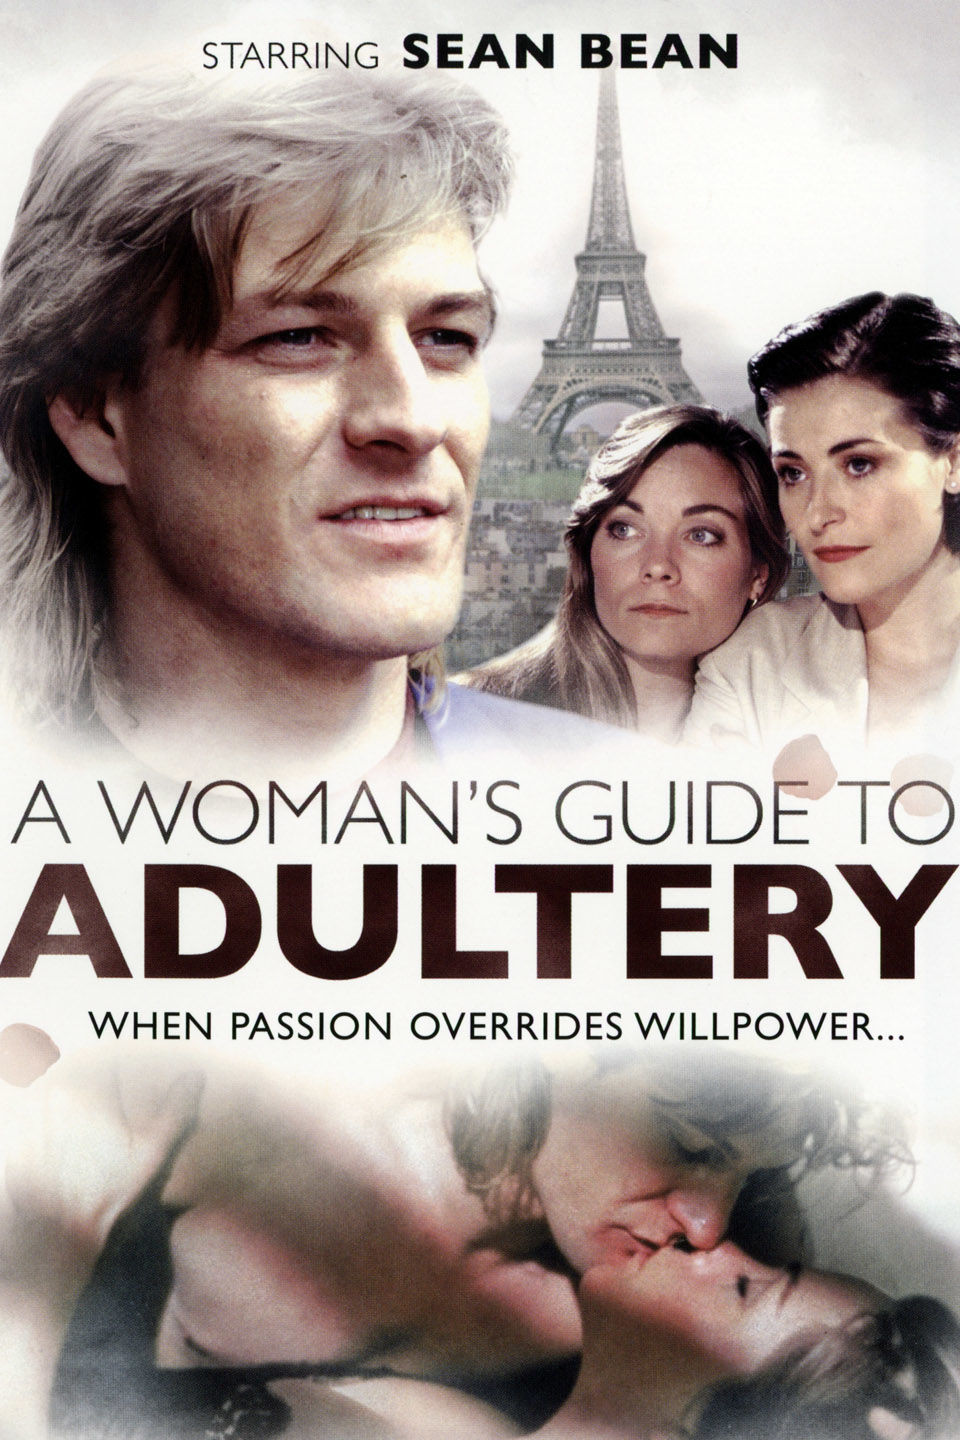 A Woman's Guide to Adultery cover